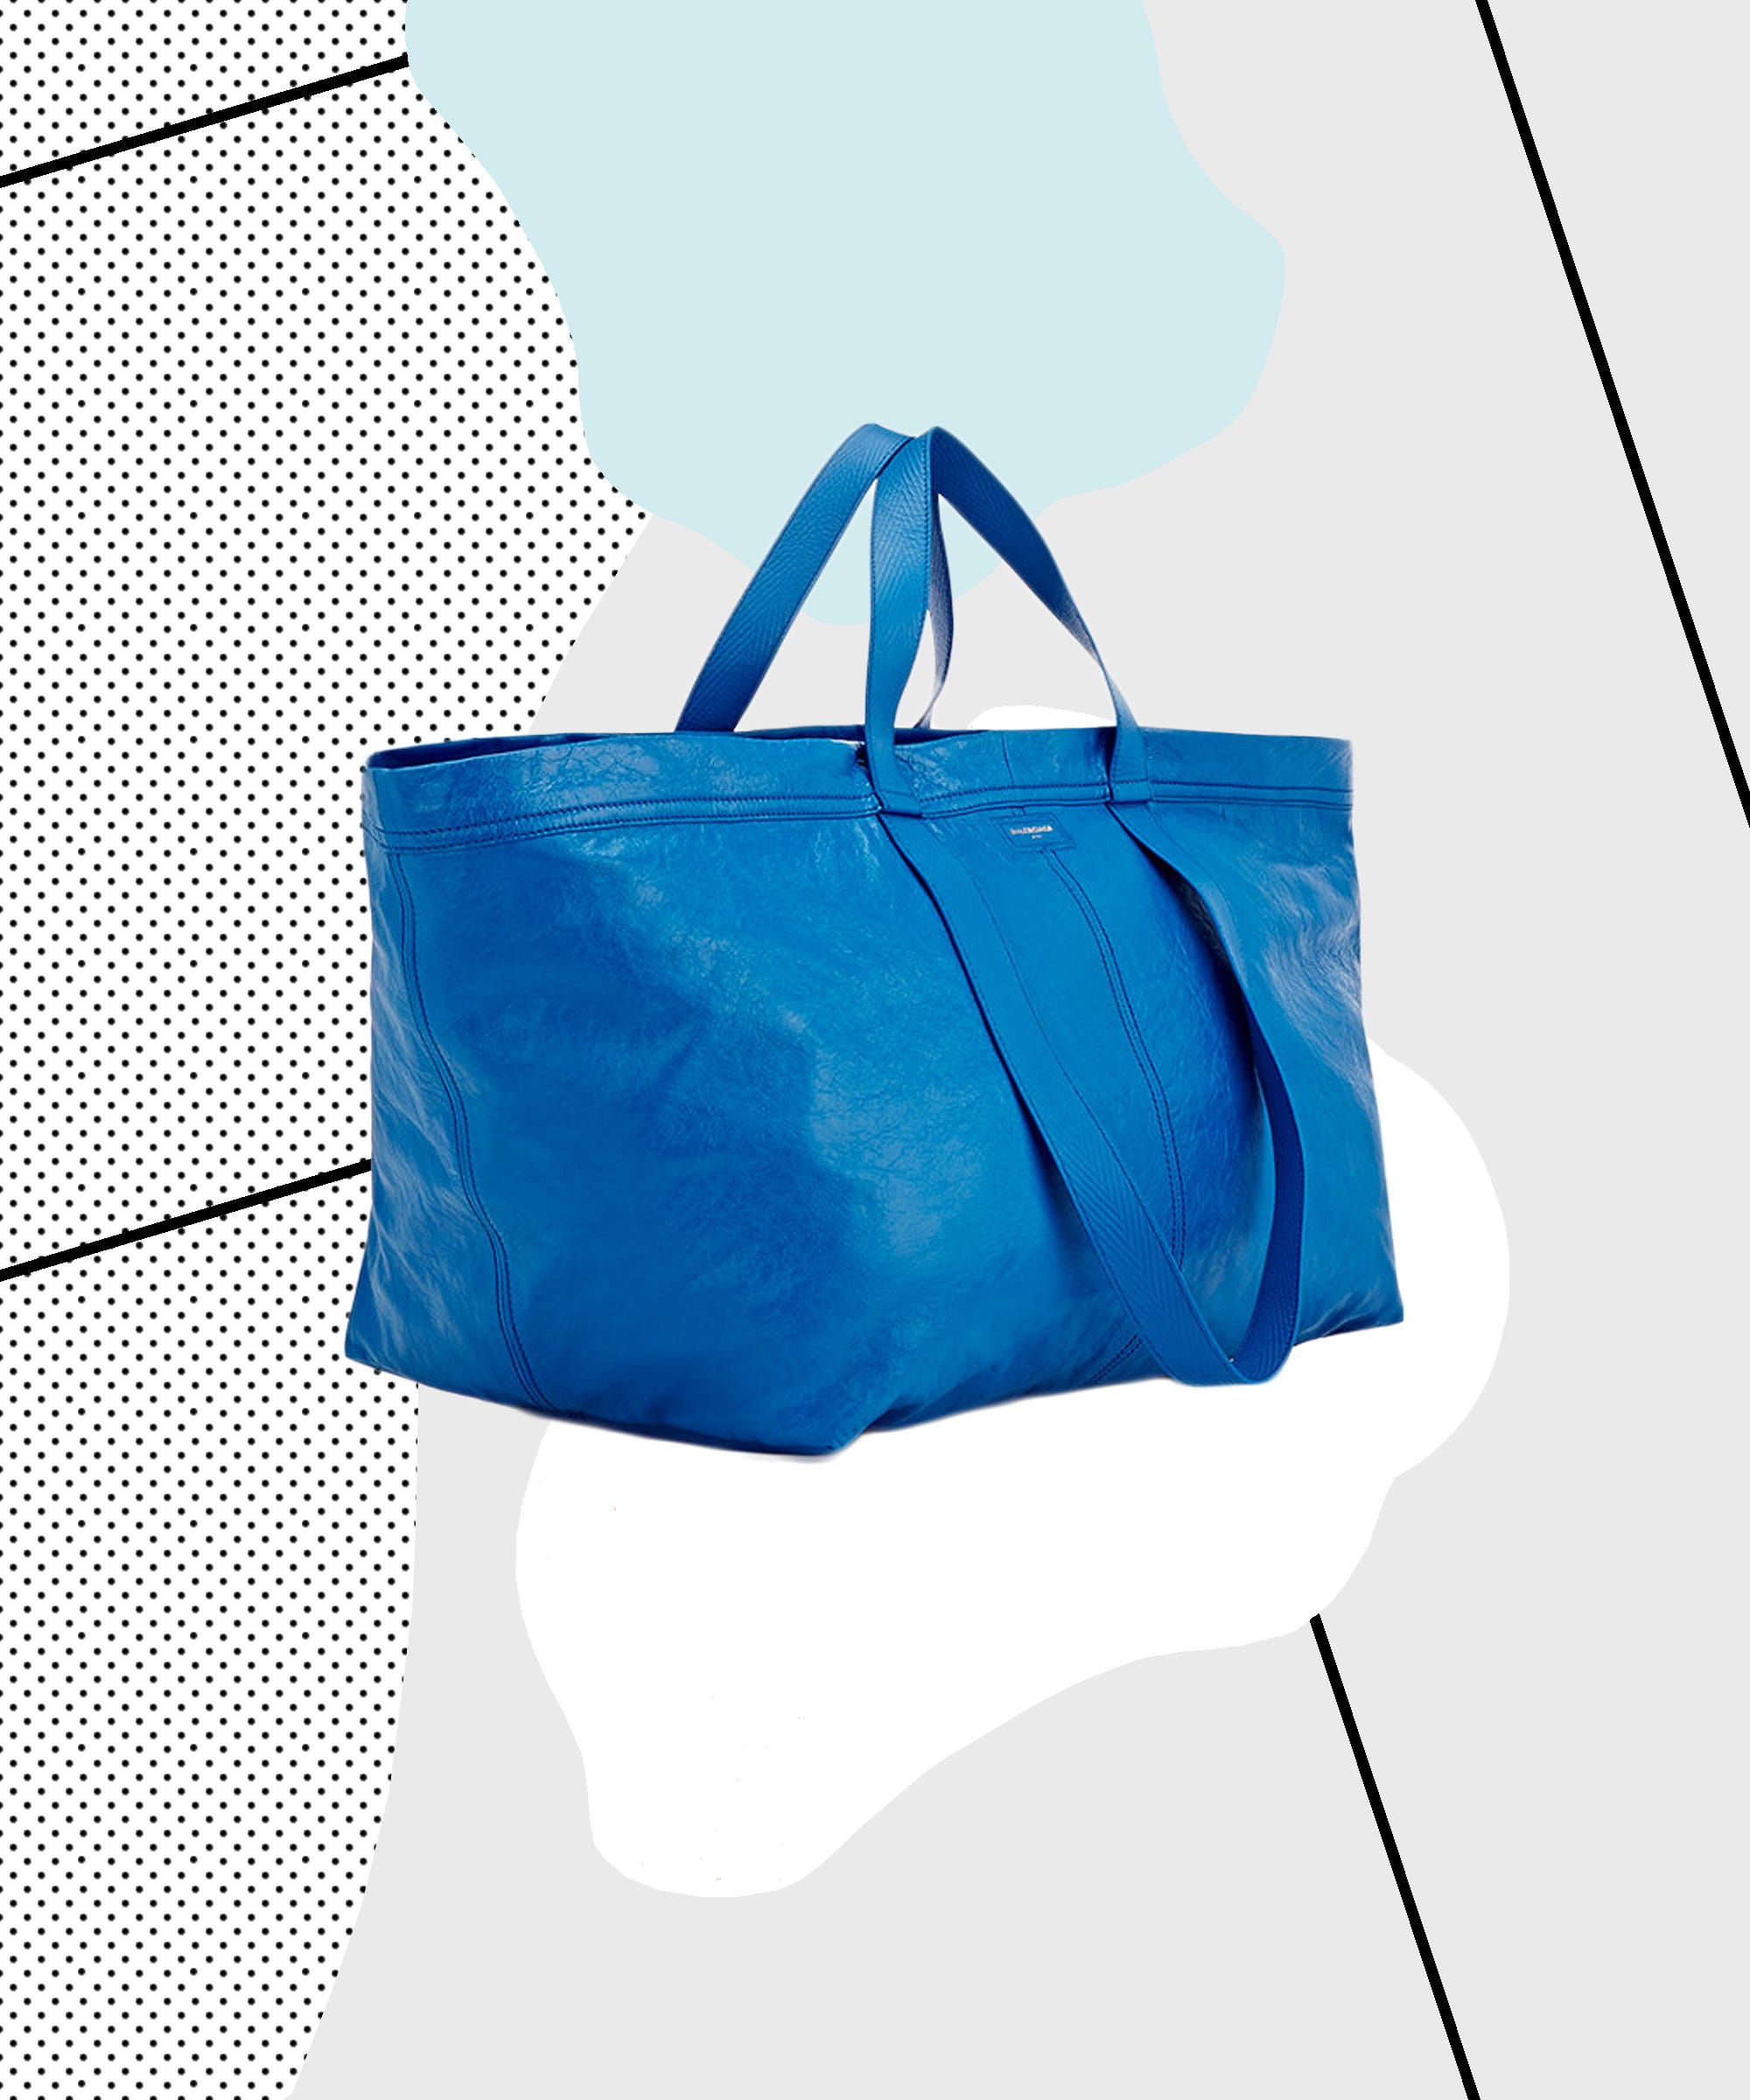 Balenciaga's $2145 bag is just like Ikea's 99 cent tote